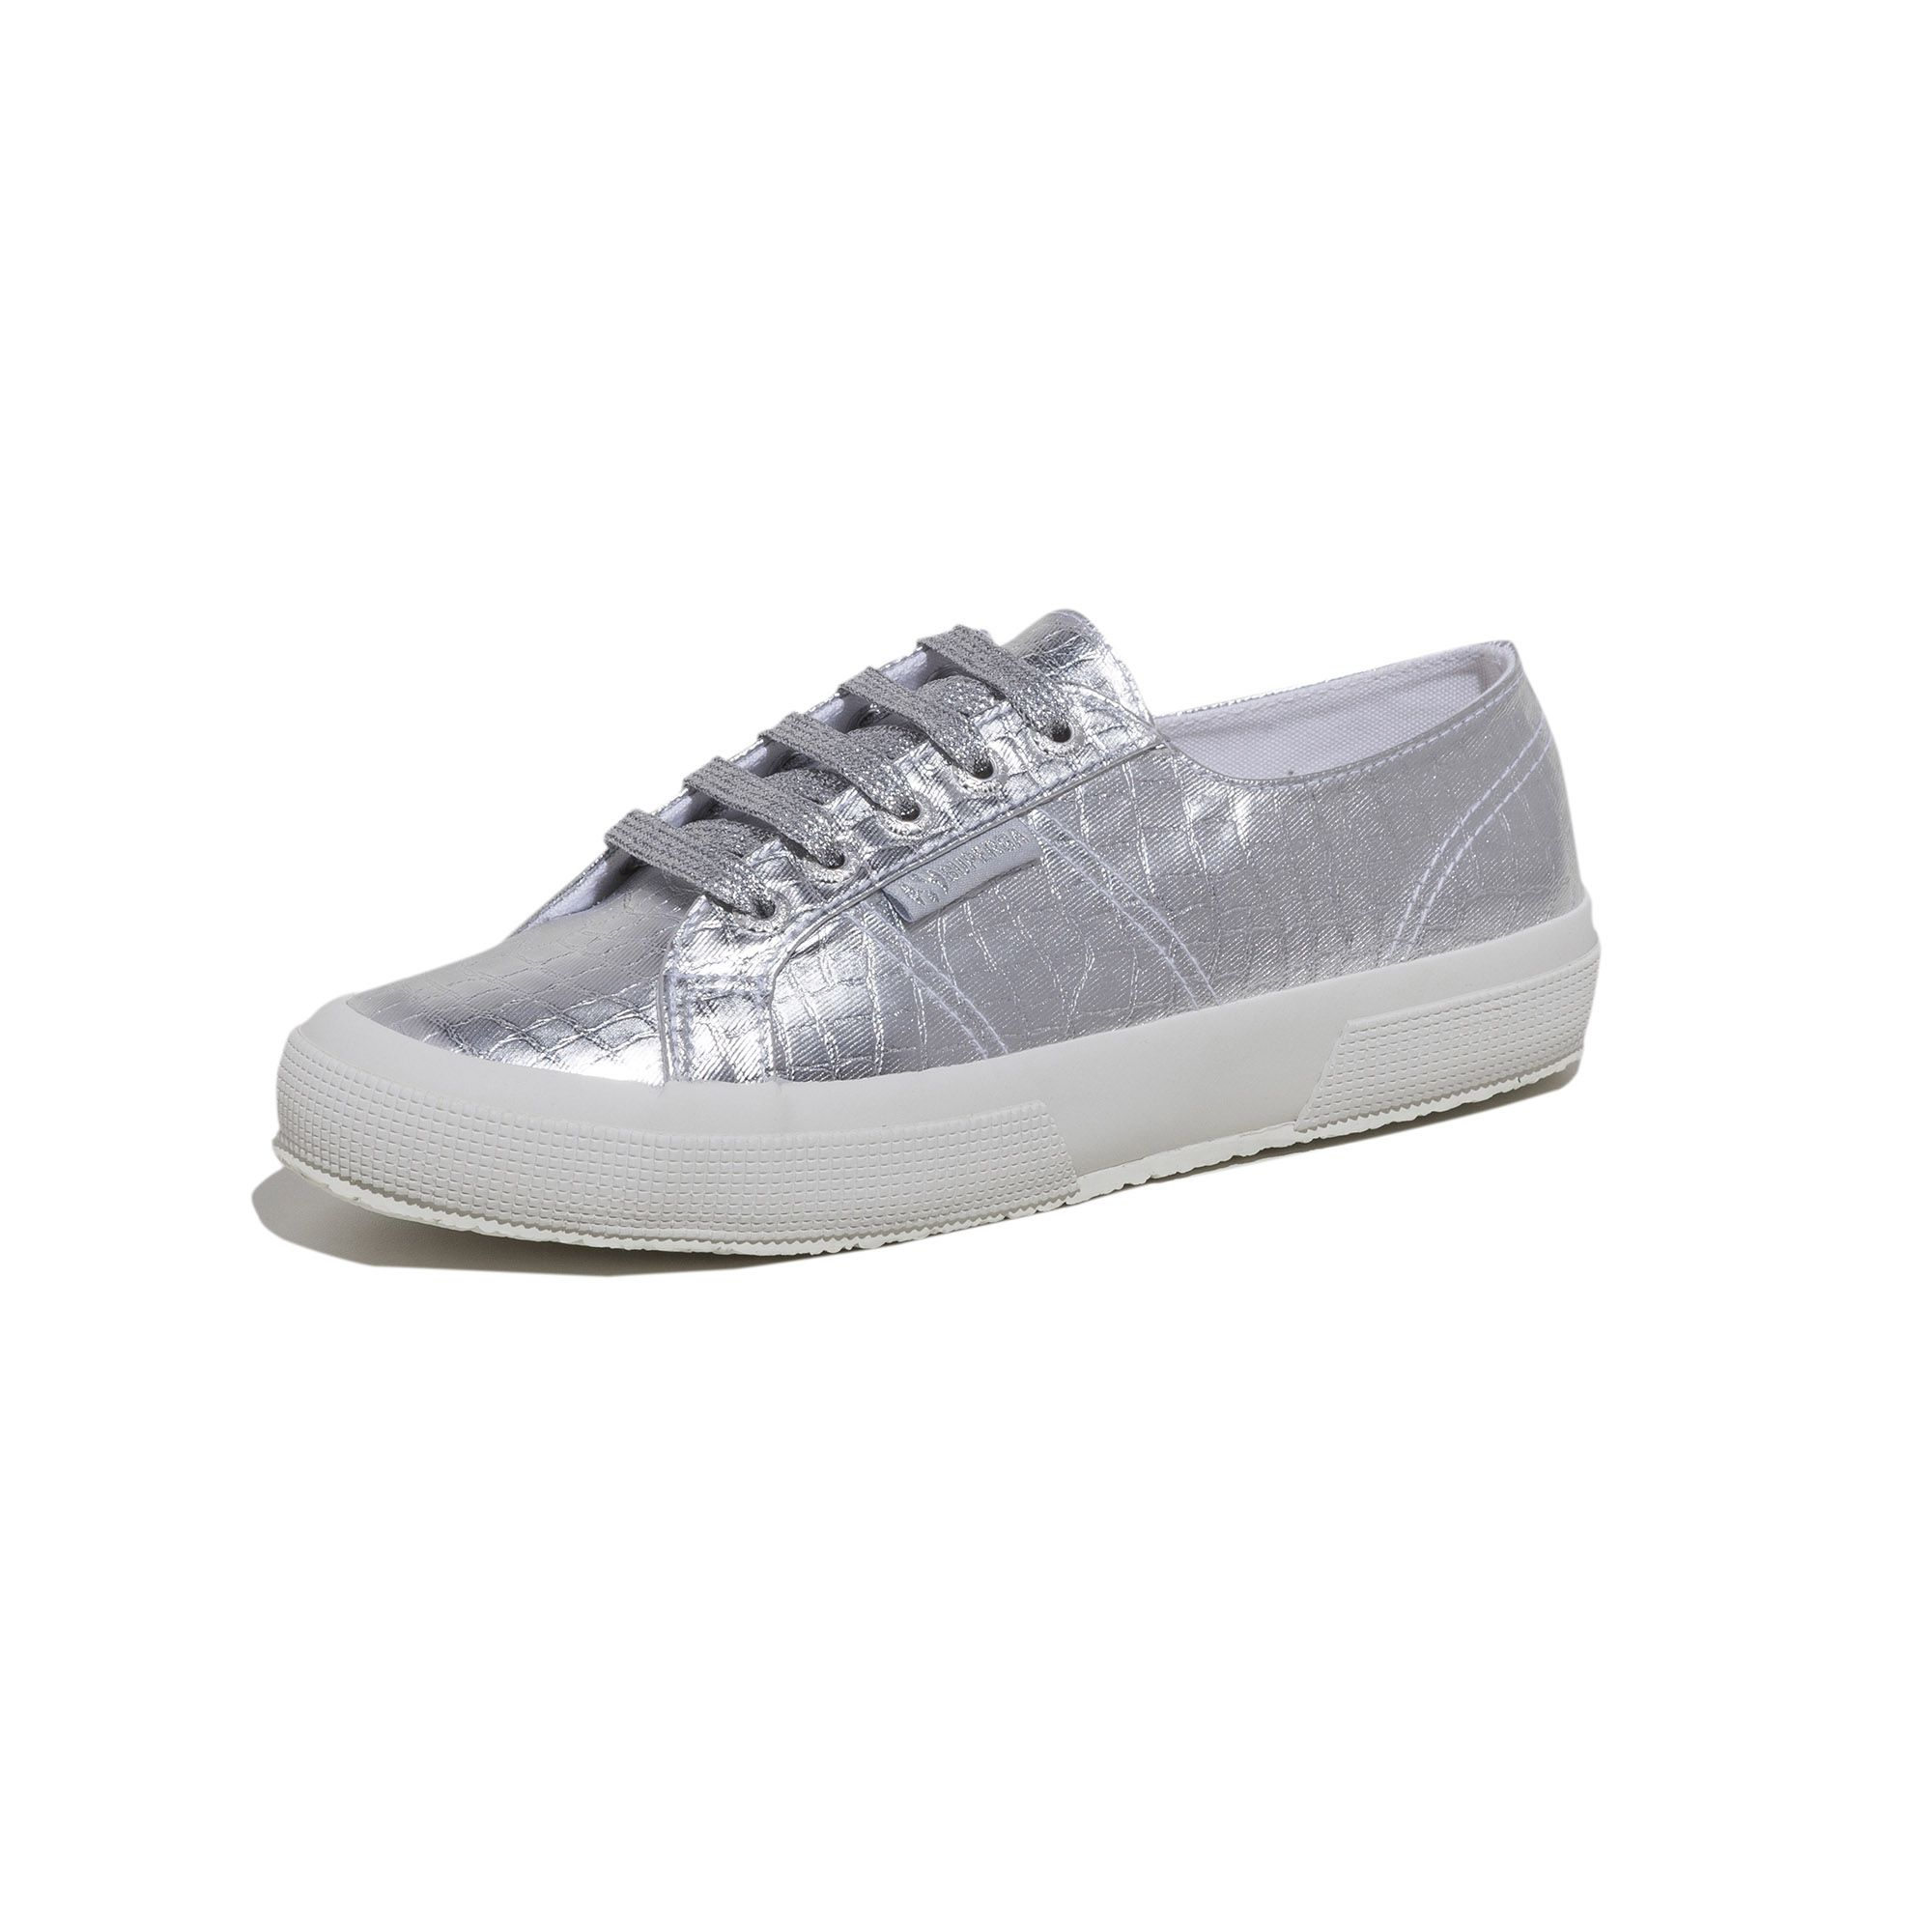 2750 COT METEMBOSSED LIGHT GREY